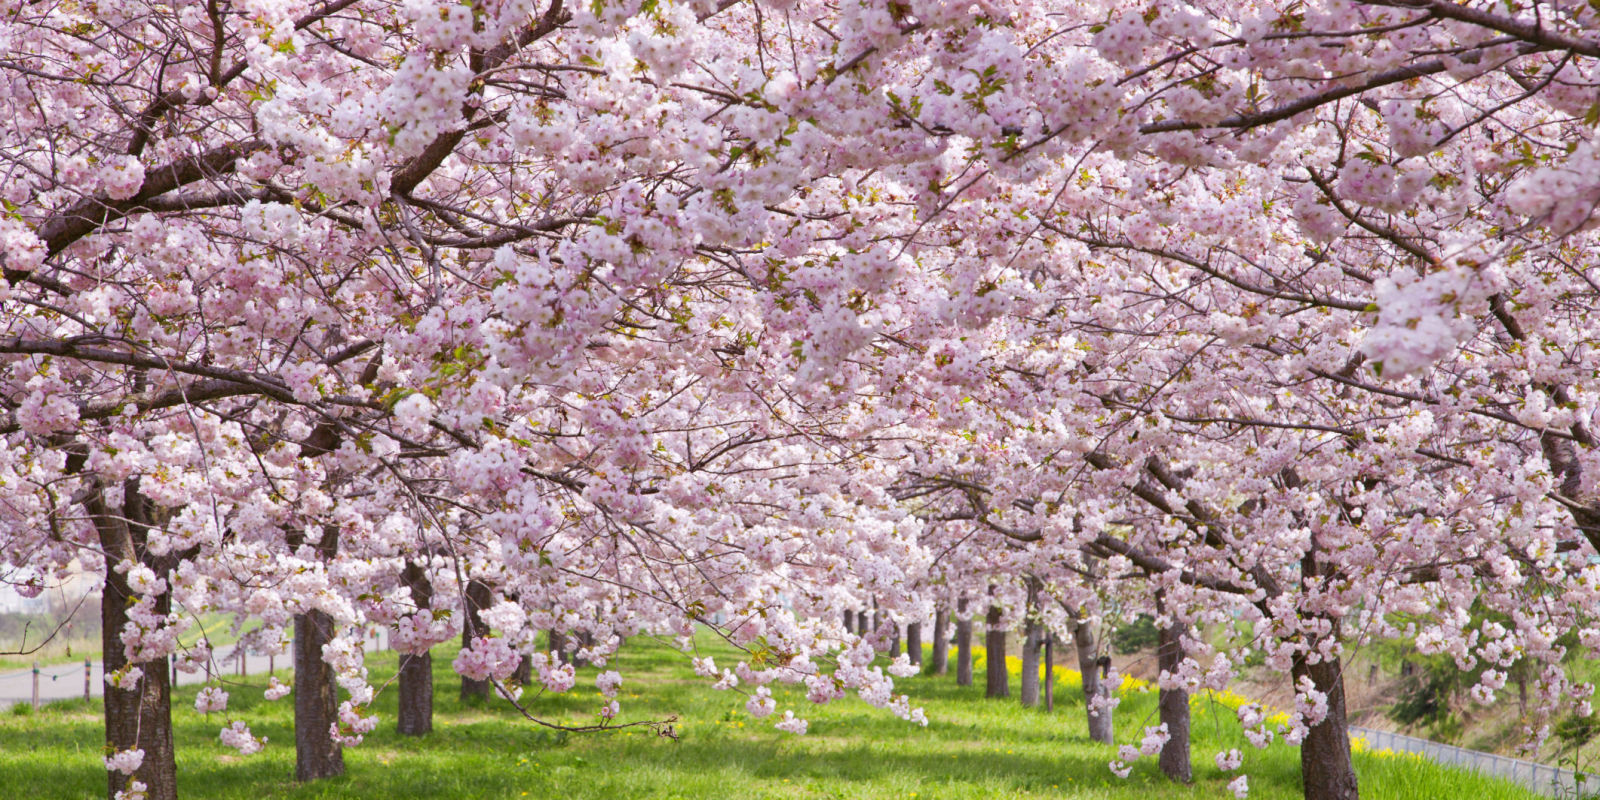 Cherry blossom trivia fun facts about cherry blossoms Cherry blossom pictures